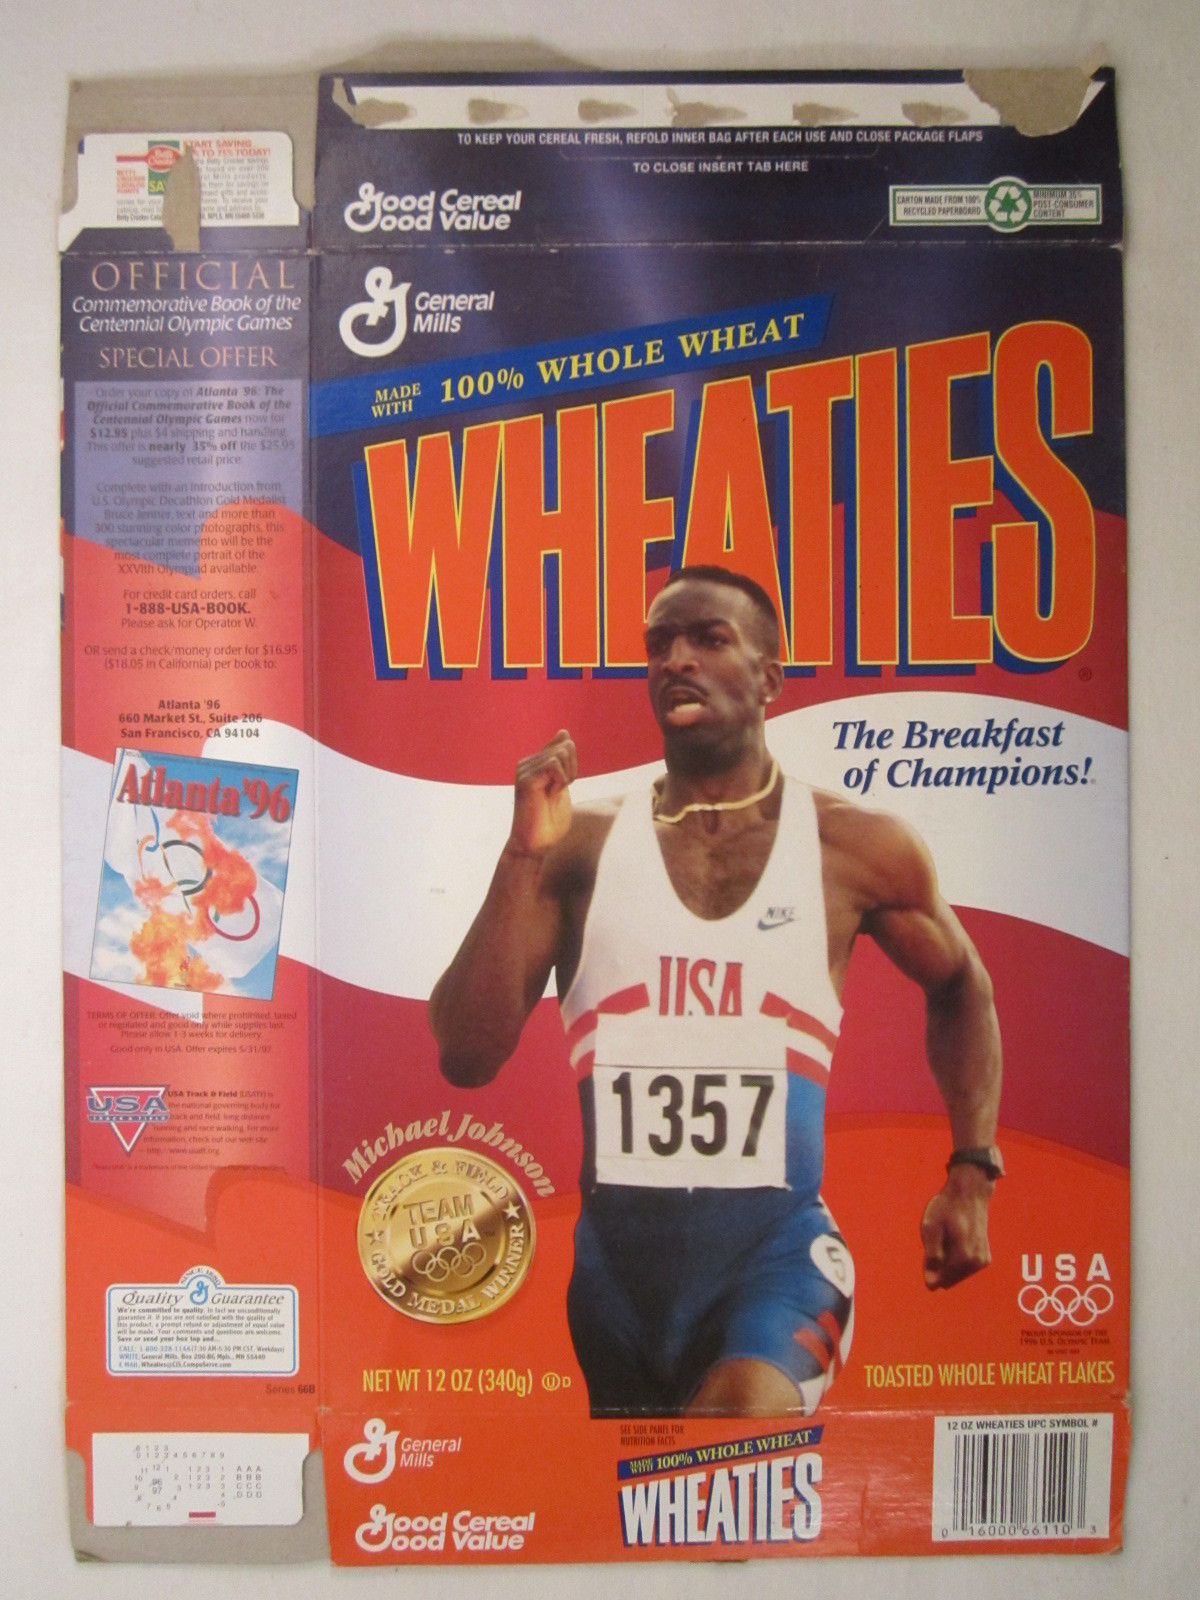 Primary image for MT WHEATIES Box 1996 12oz MICHAEL JOHNSON Track & Field Winner OLYMPICS [G7E13o]